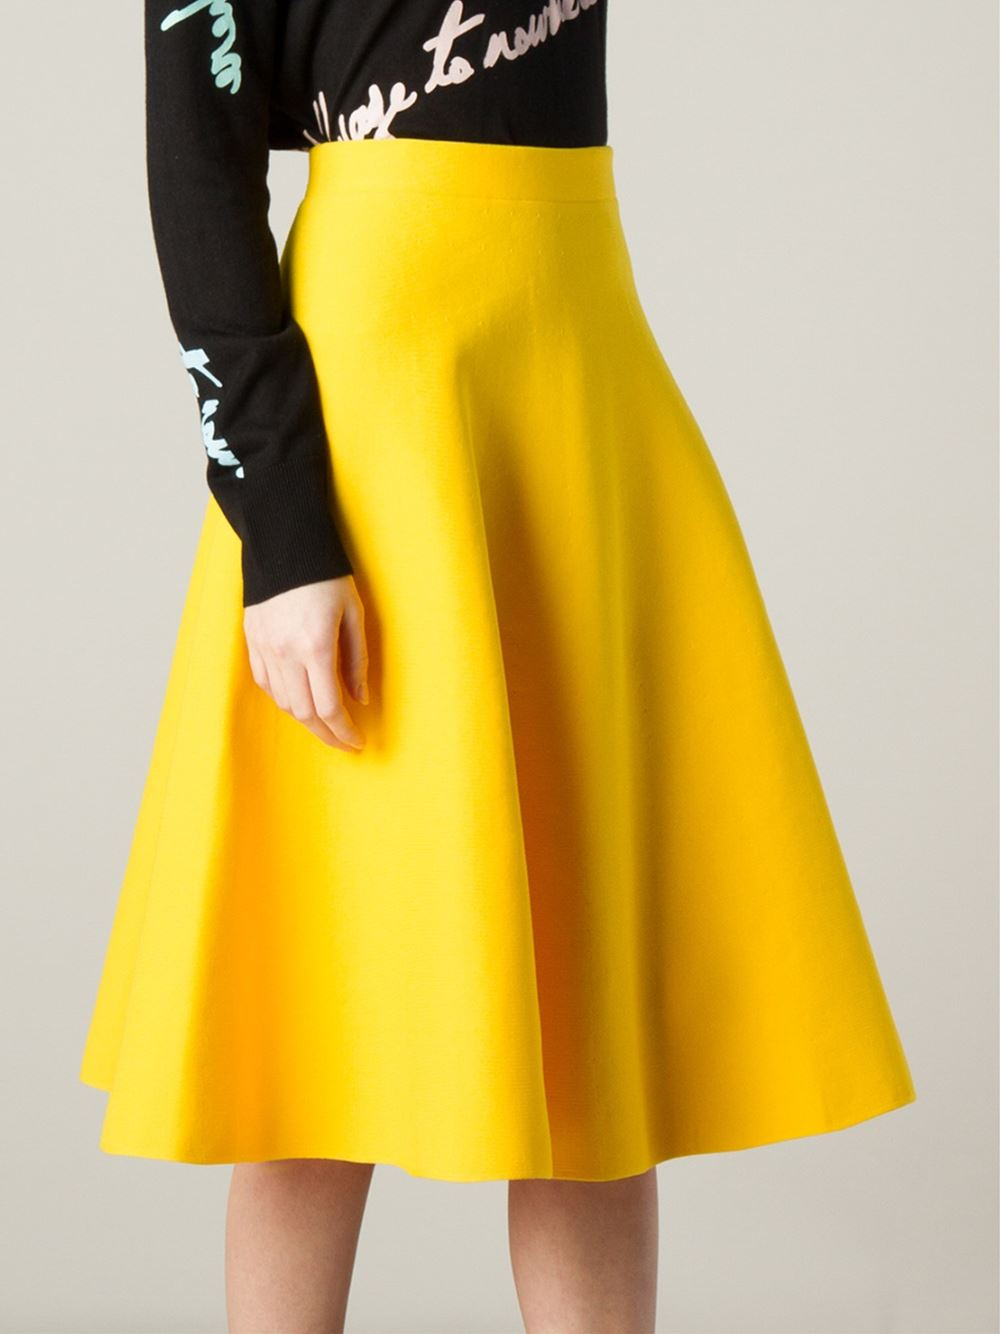 Yellow A Line Skirt - Dress Ala